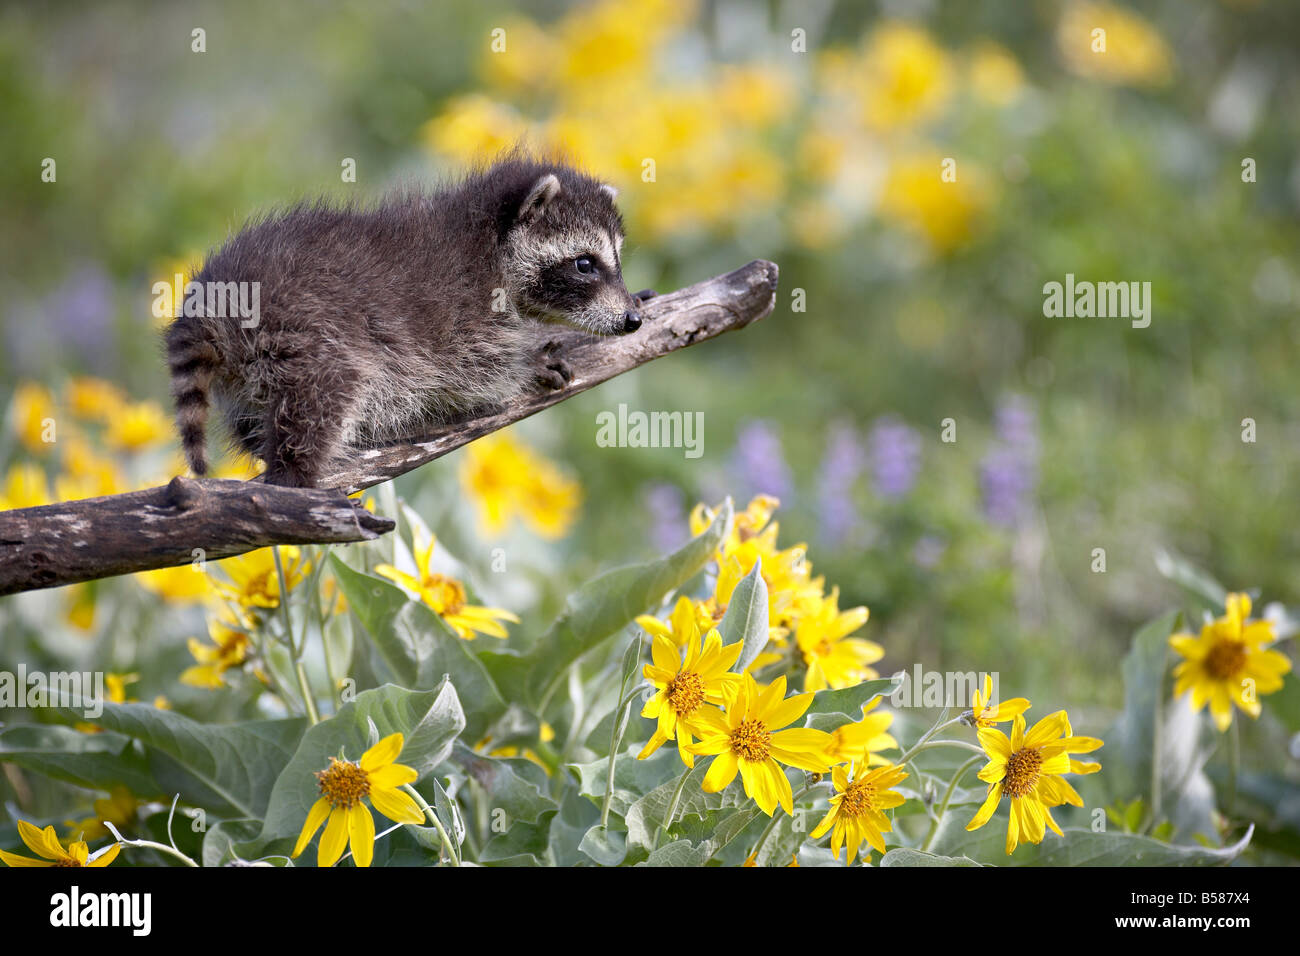 Baby raccoon (Procyon lotor) in captivity, Animals of Montana, Bozeman, Montana, United States of America, North - Stock Image